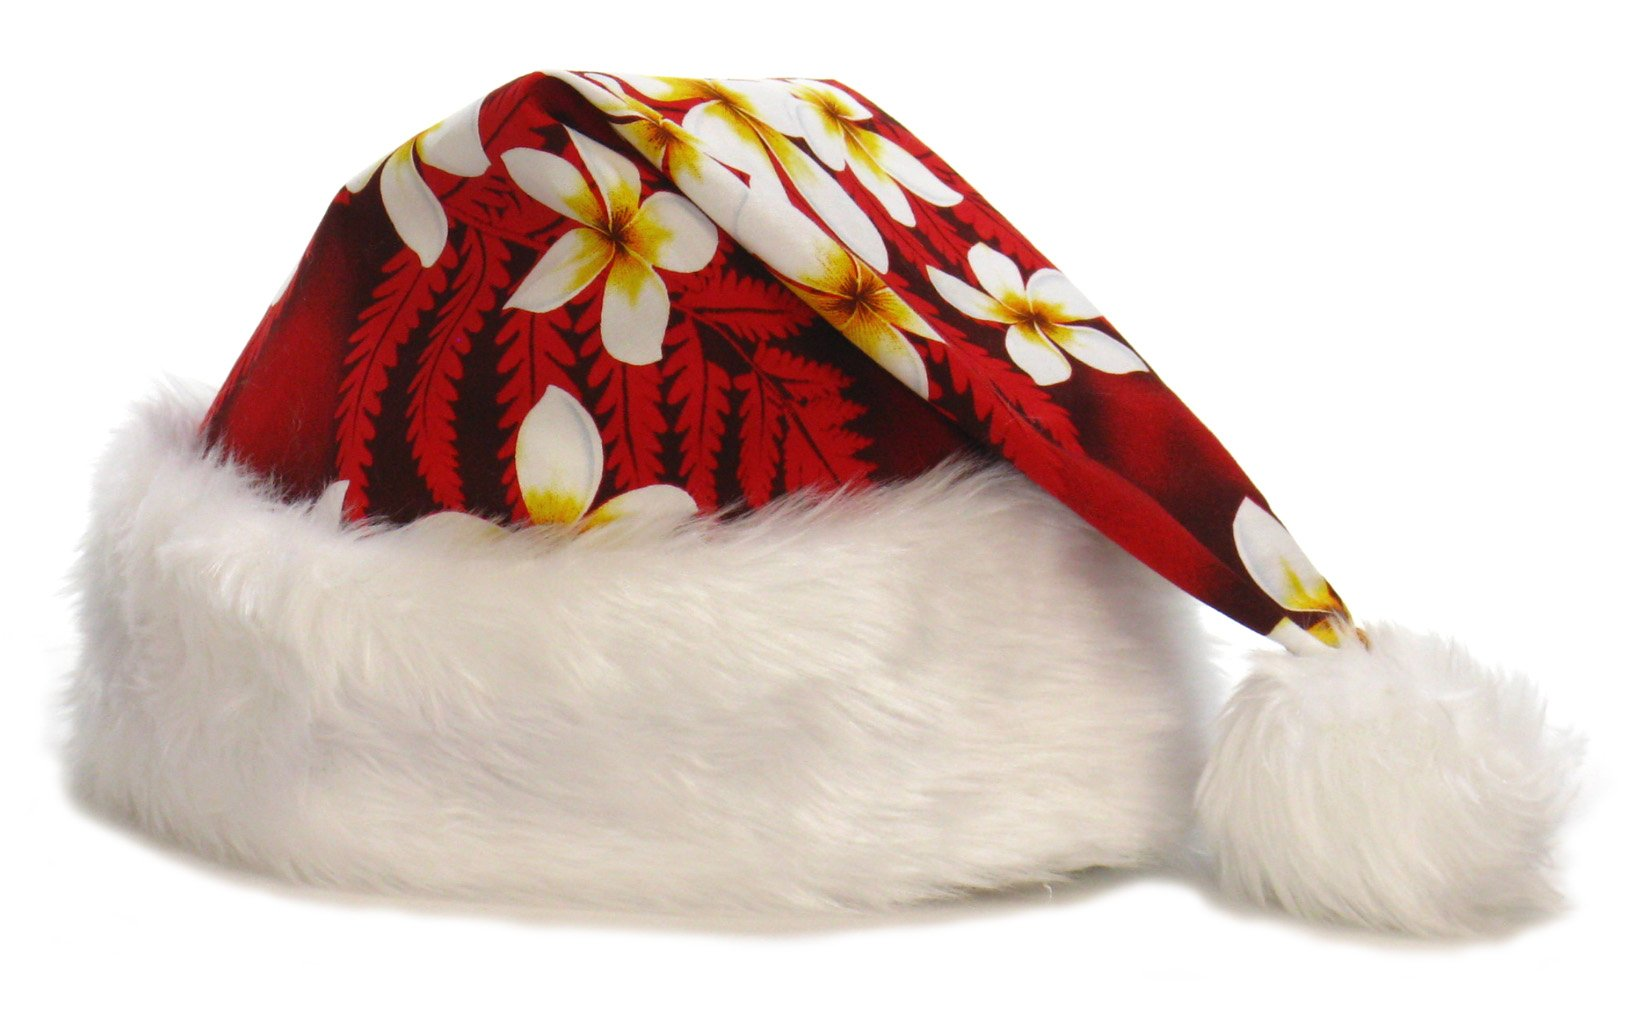 Hawaiian Style Tropical Santa Claus Hat - Adult Size - Red